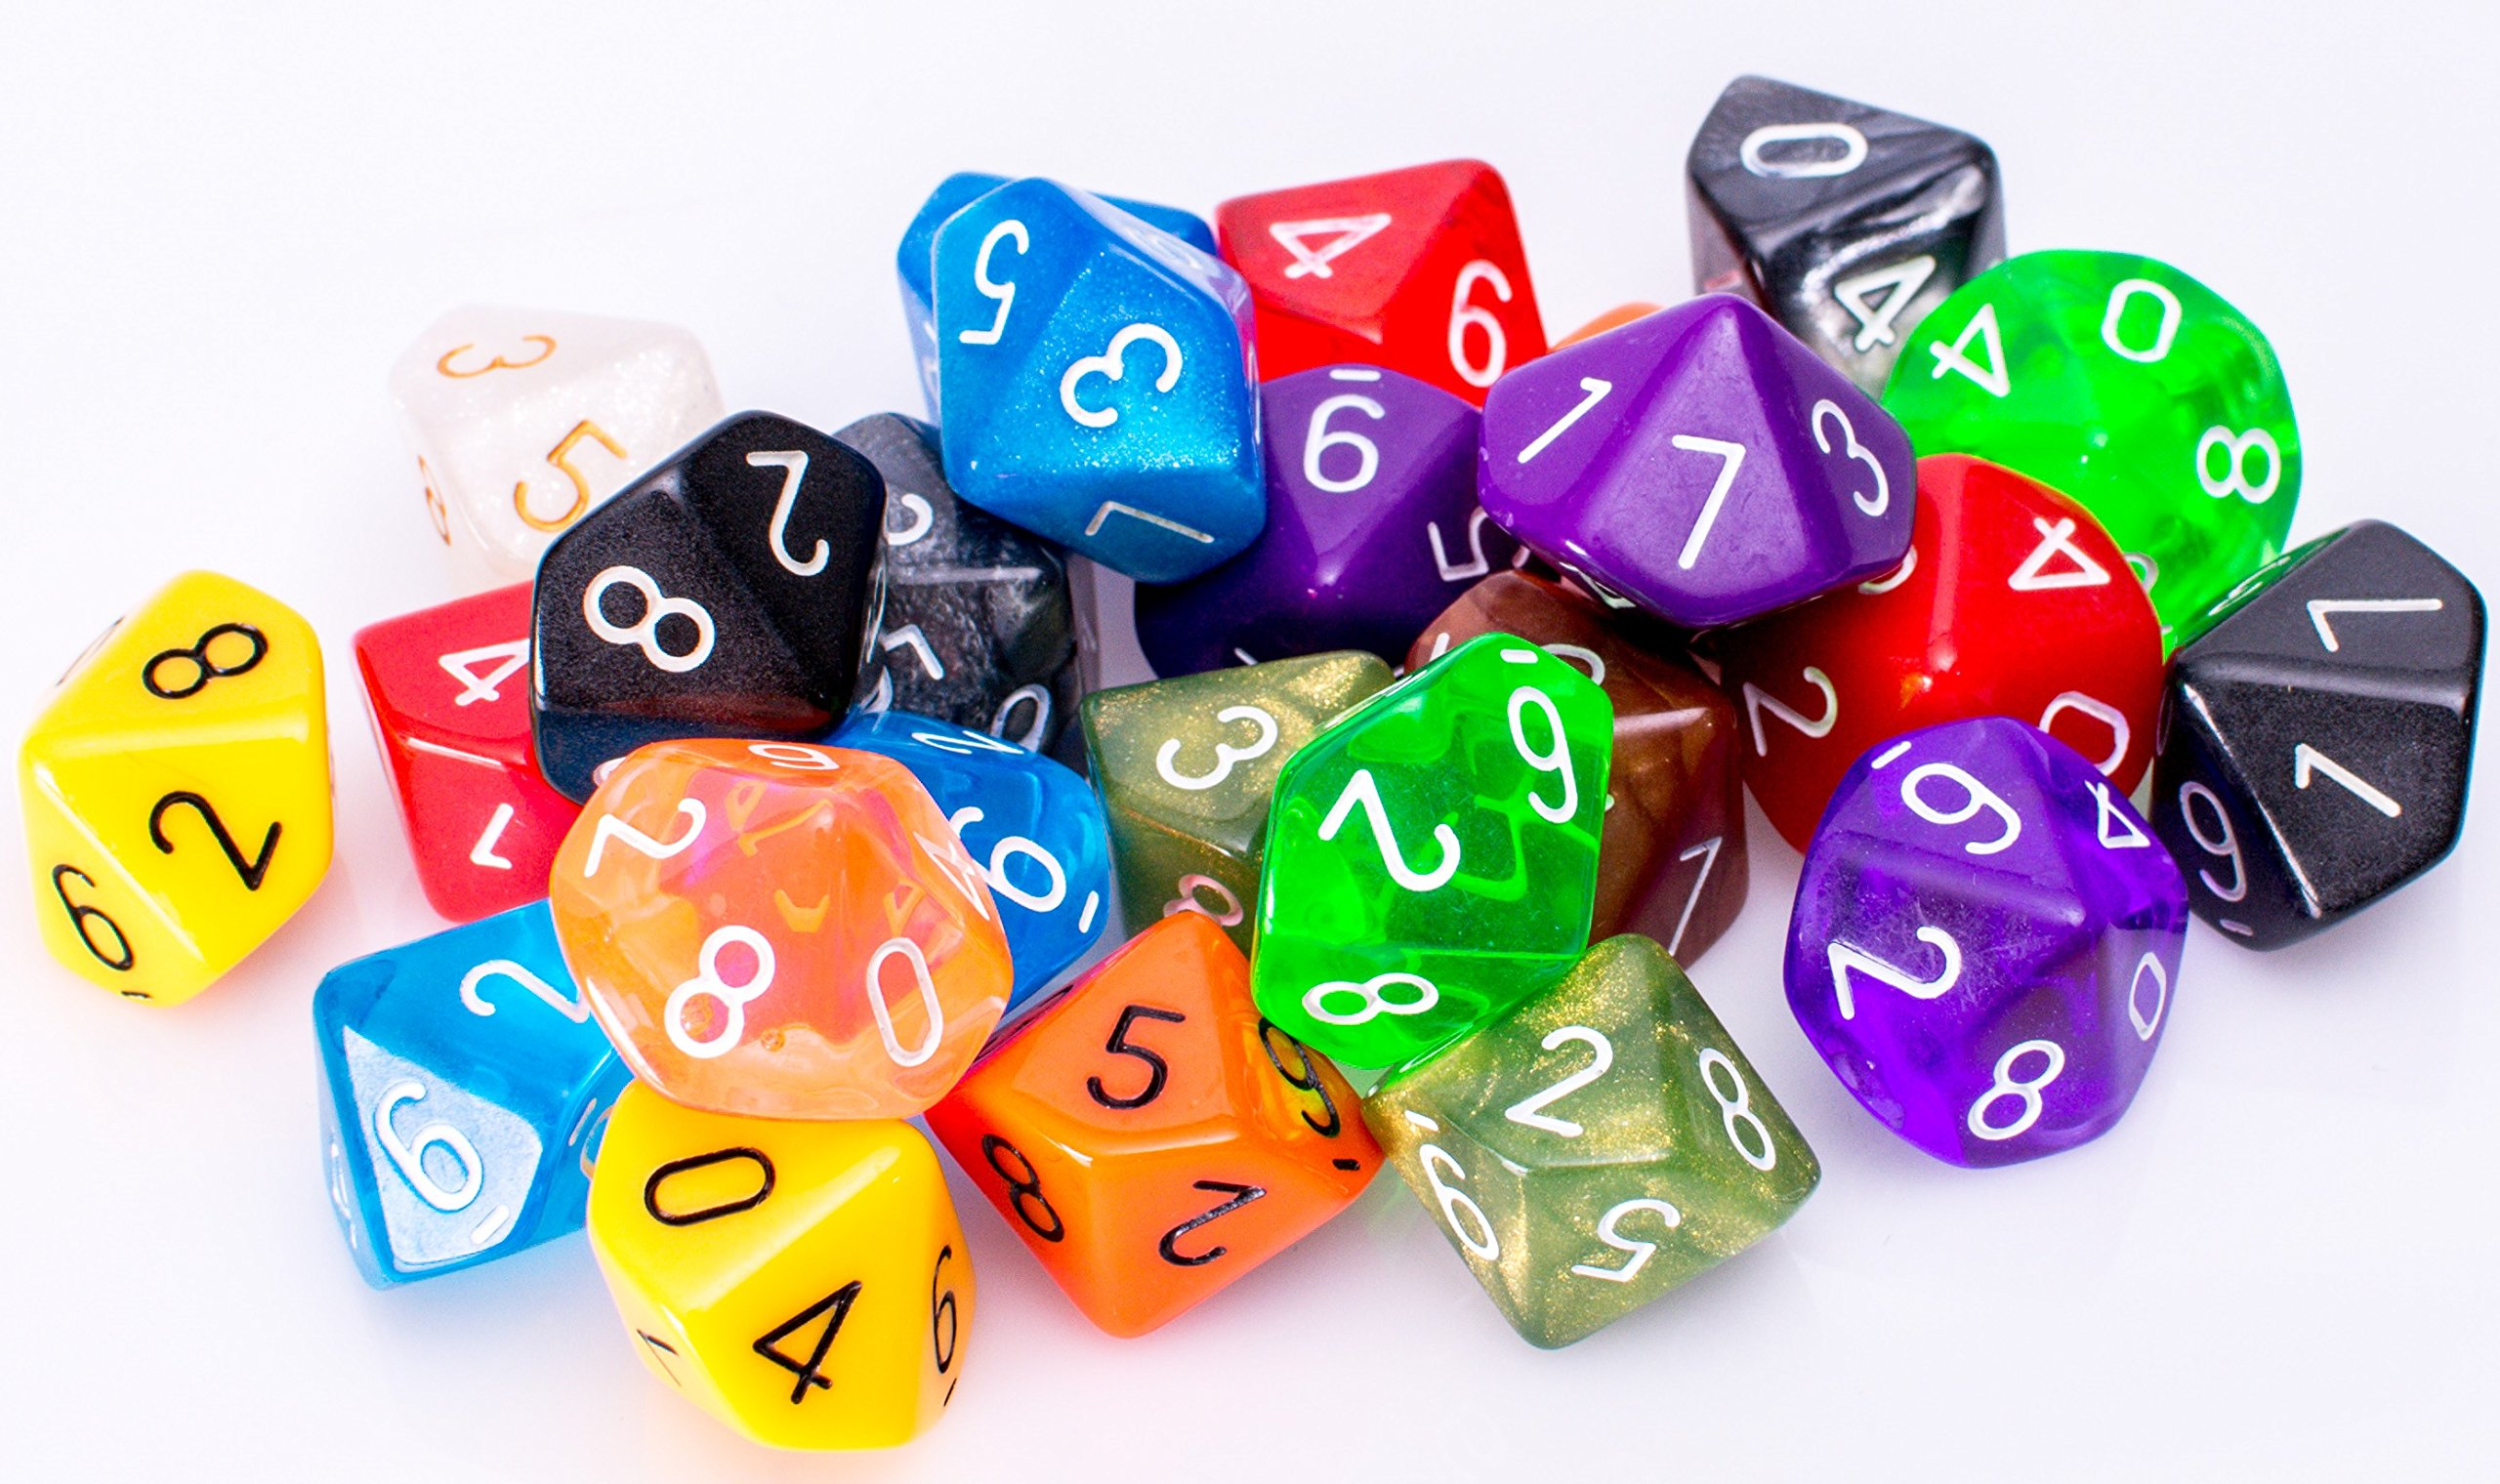 25 Count Assorted Pack of 10 Sided Dice - Multi Colored Assortment of D10 Polyhedral Dice by Easy Roller Dice Co